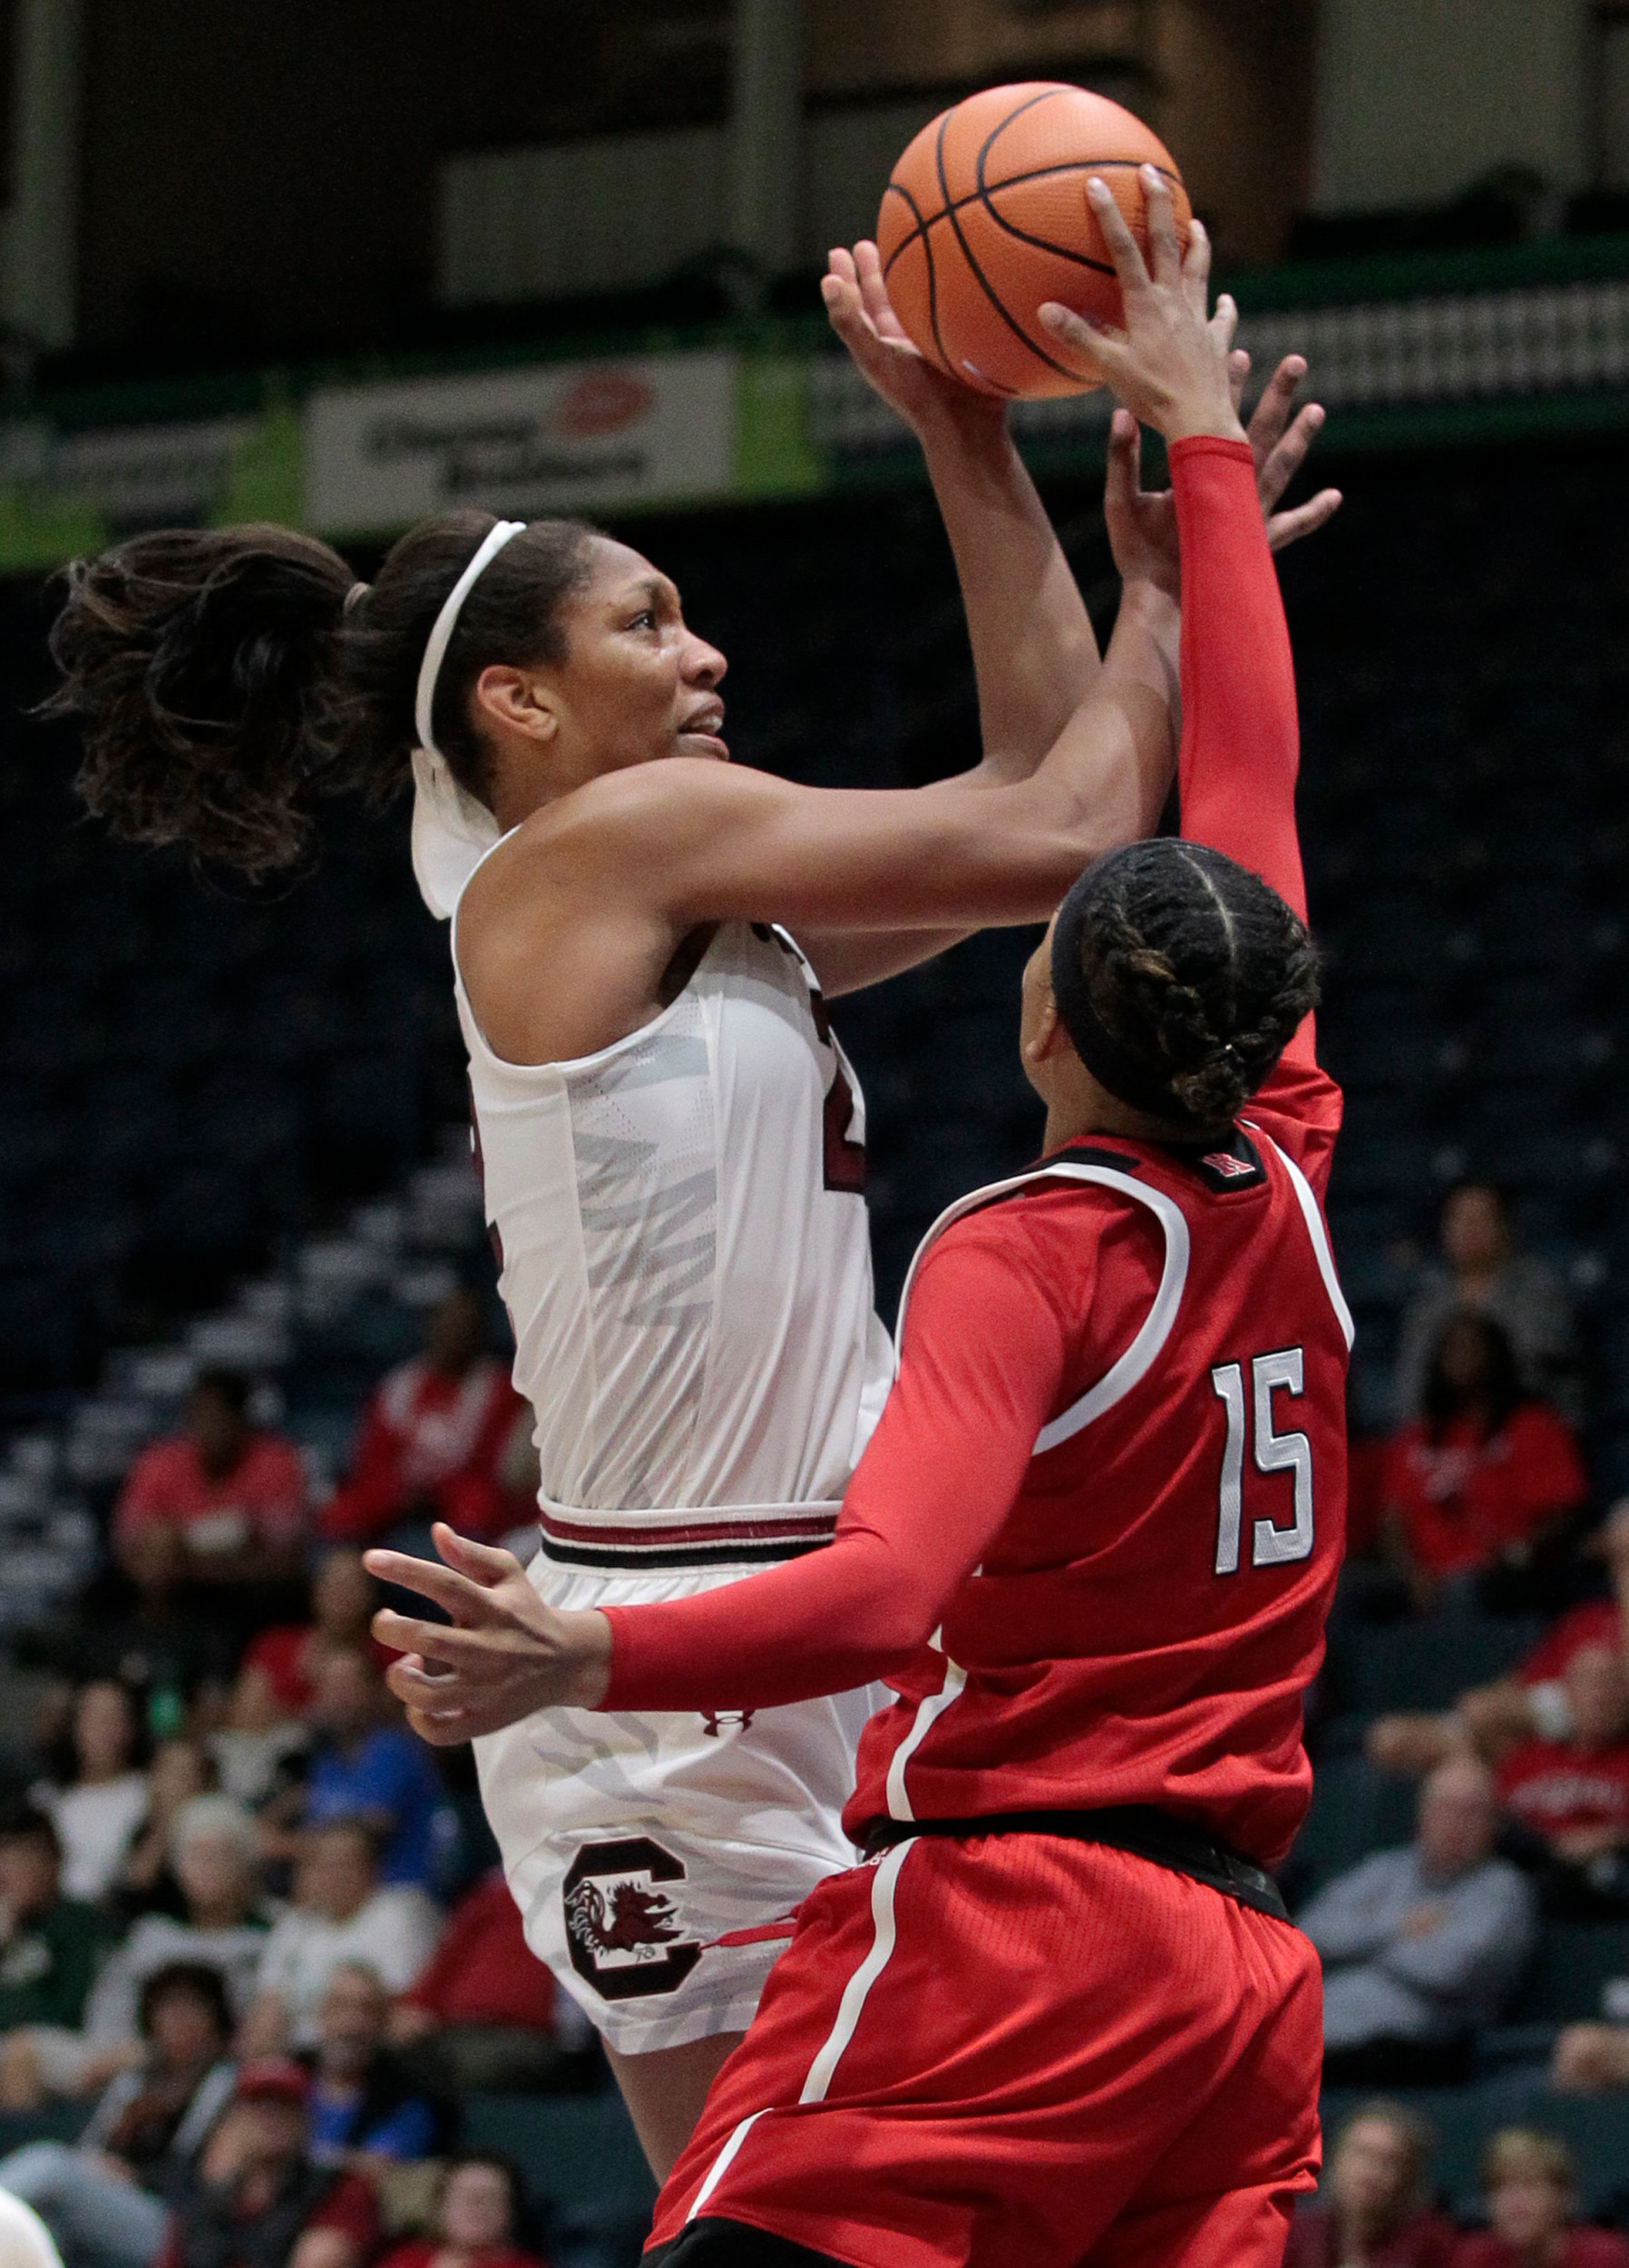 South Carolina's A'ja Wilson, left, goes up for a shot in the Gamecocks' 78-68 victory over Rutgers on Friday in the Gulf Coast Showcase in Estero, Fla. Wilson scored 33 points.